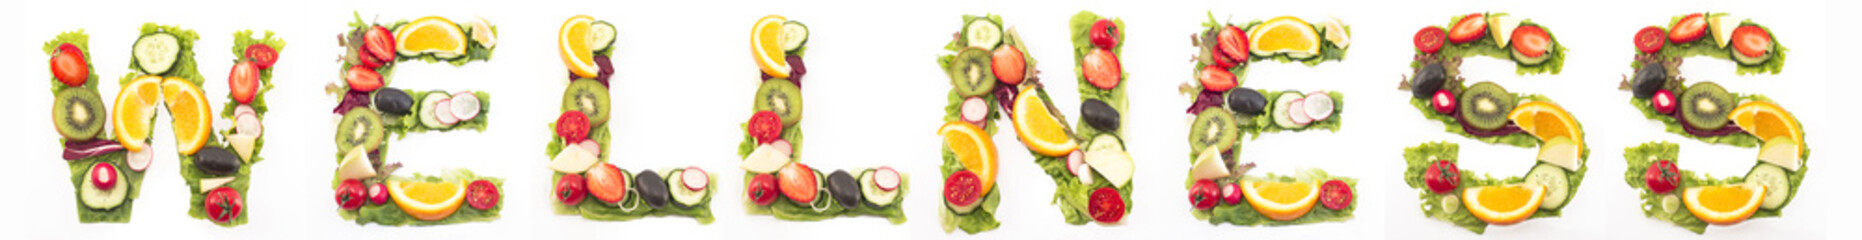 Word Wellness Made of Salad and Fruits